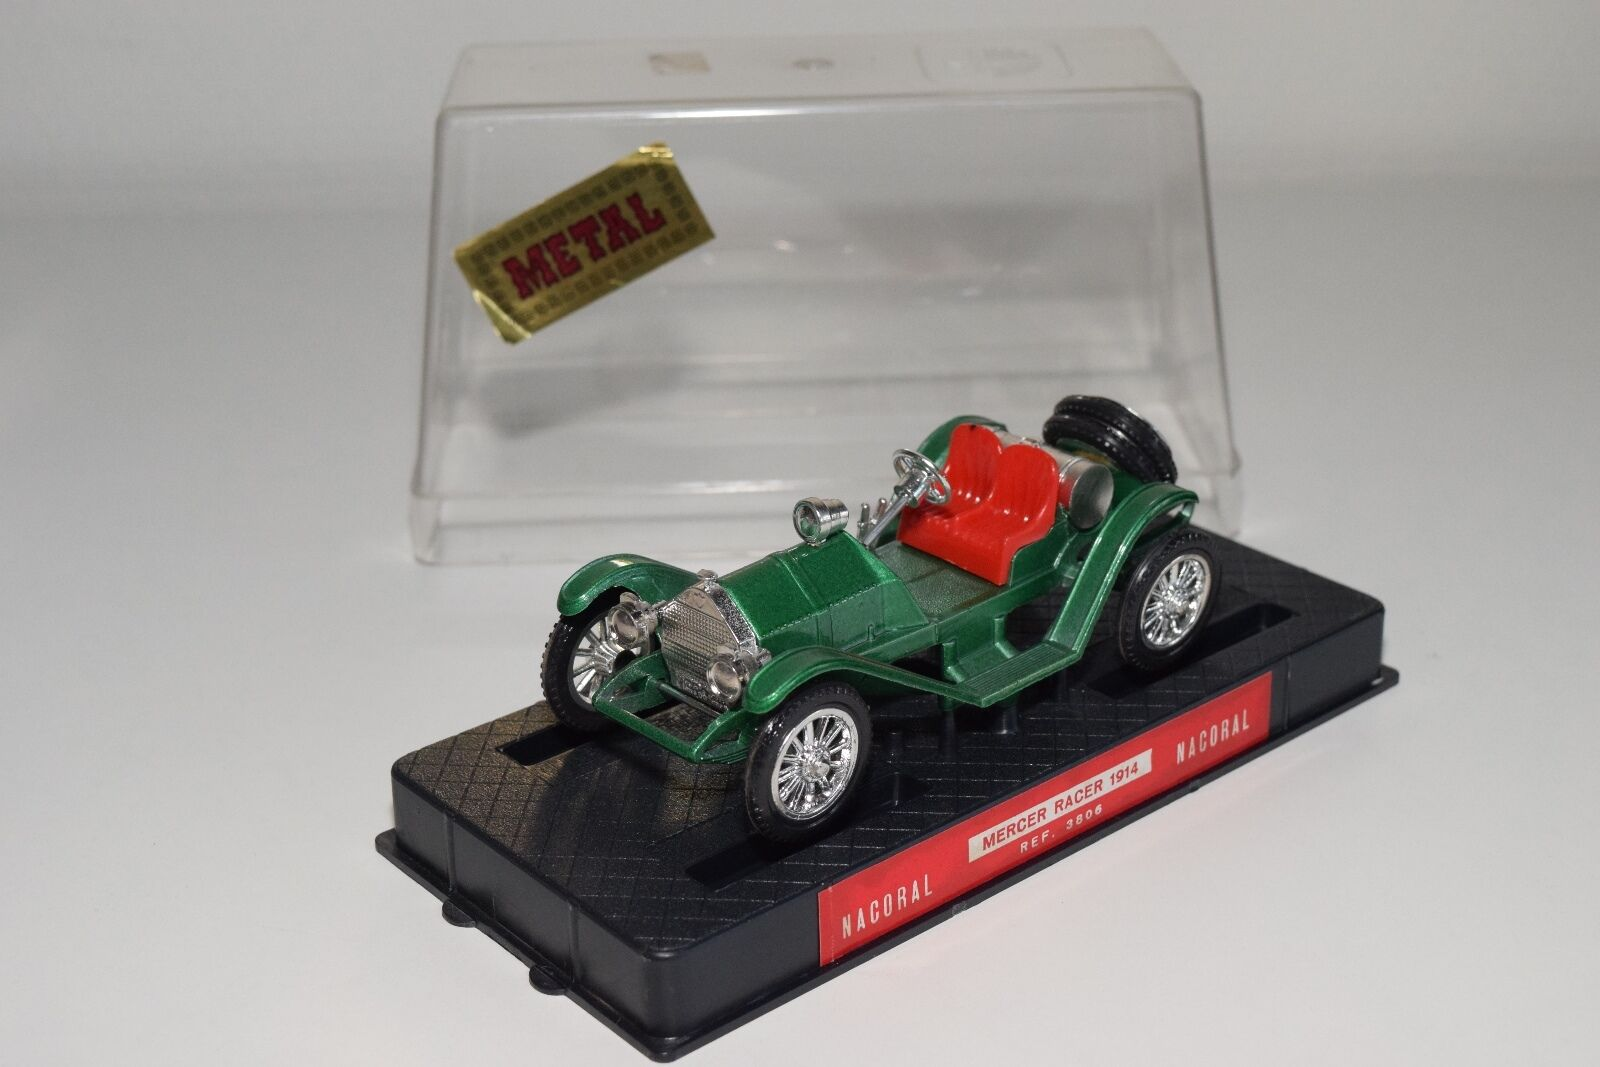 + NACORAL 3806 MERCER RACER 1914 METALLIC verde MINT BOXED RARE SELTEN